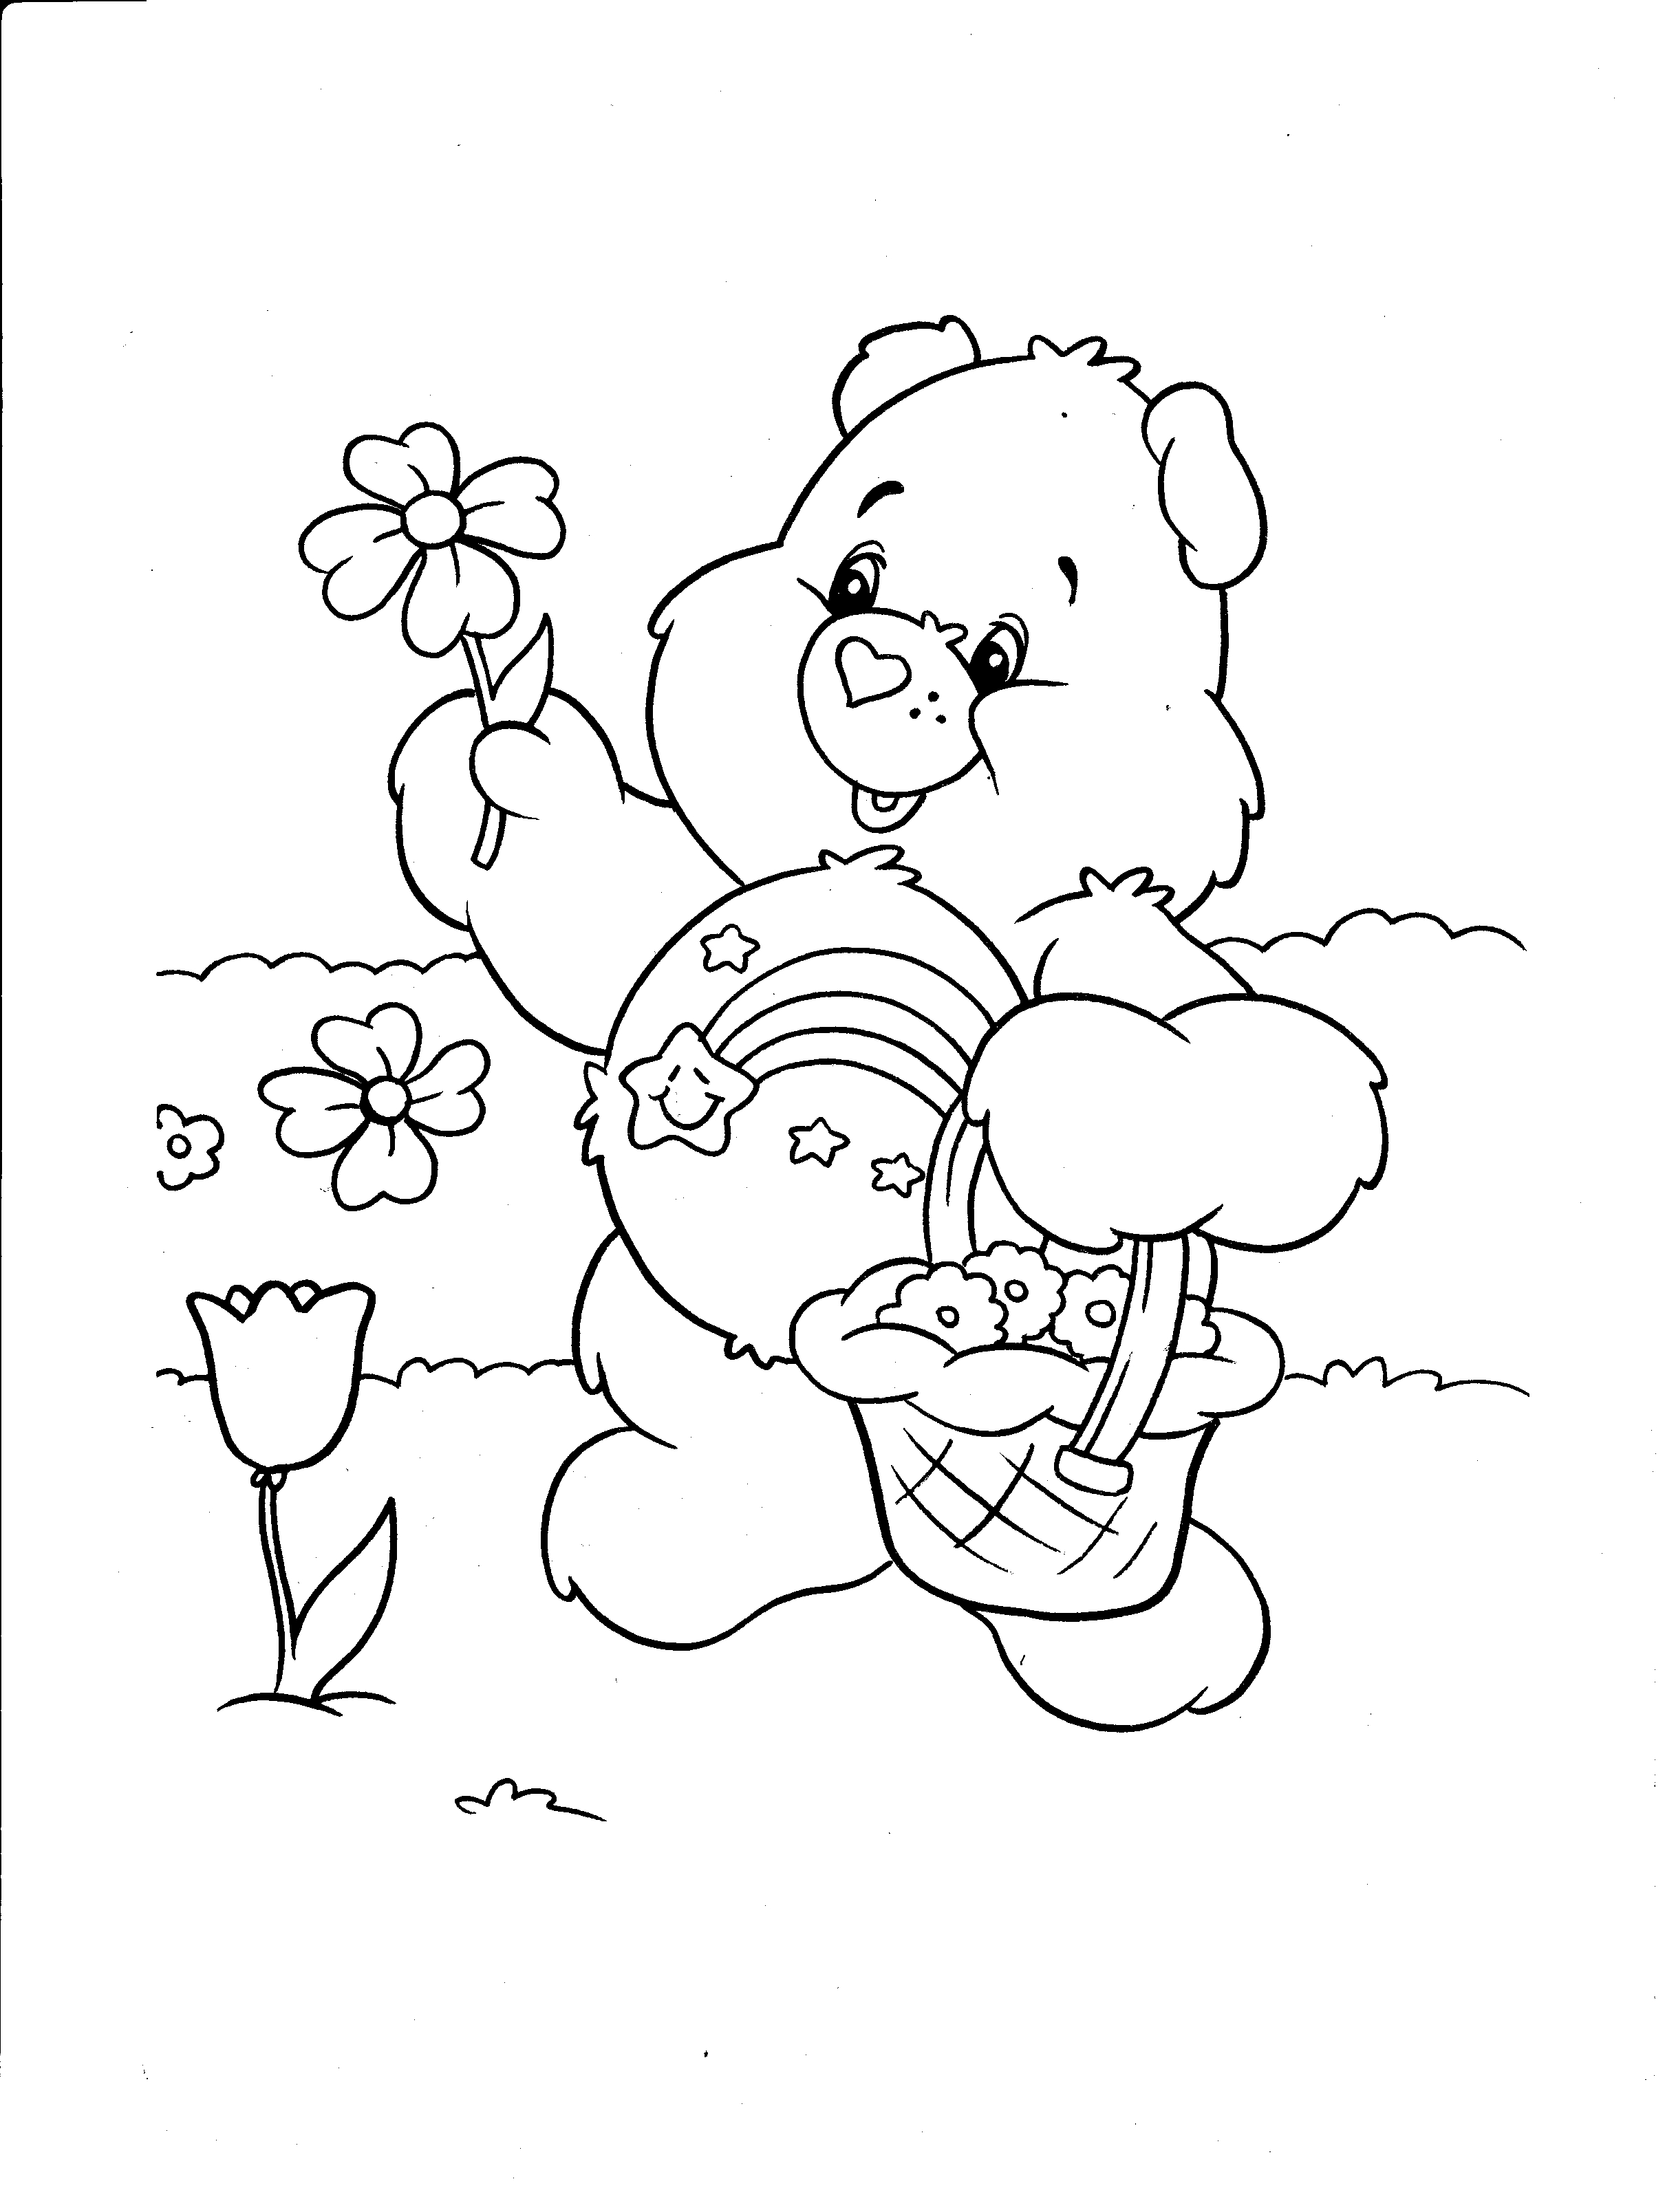 It's just a graphic of Massif Printable Bear Coloring Pages